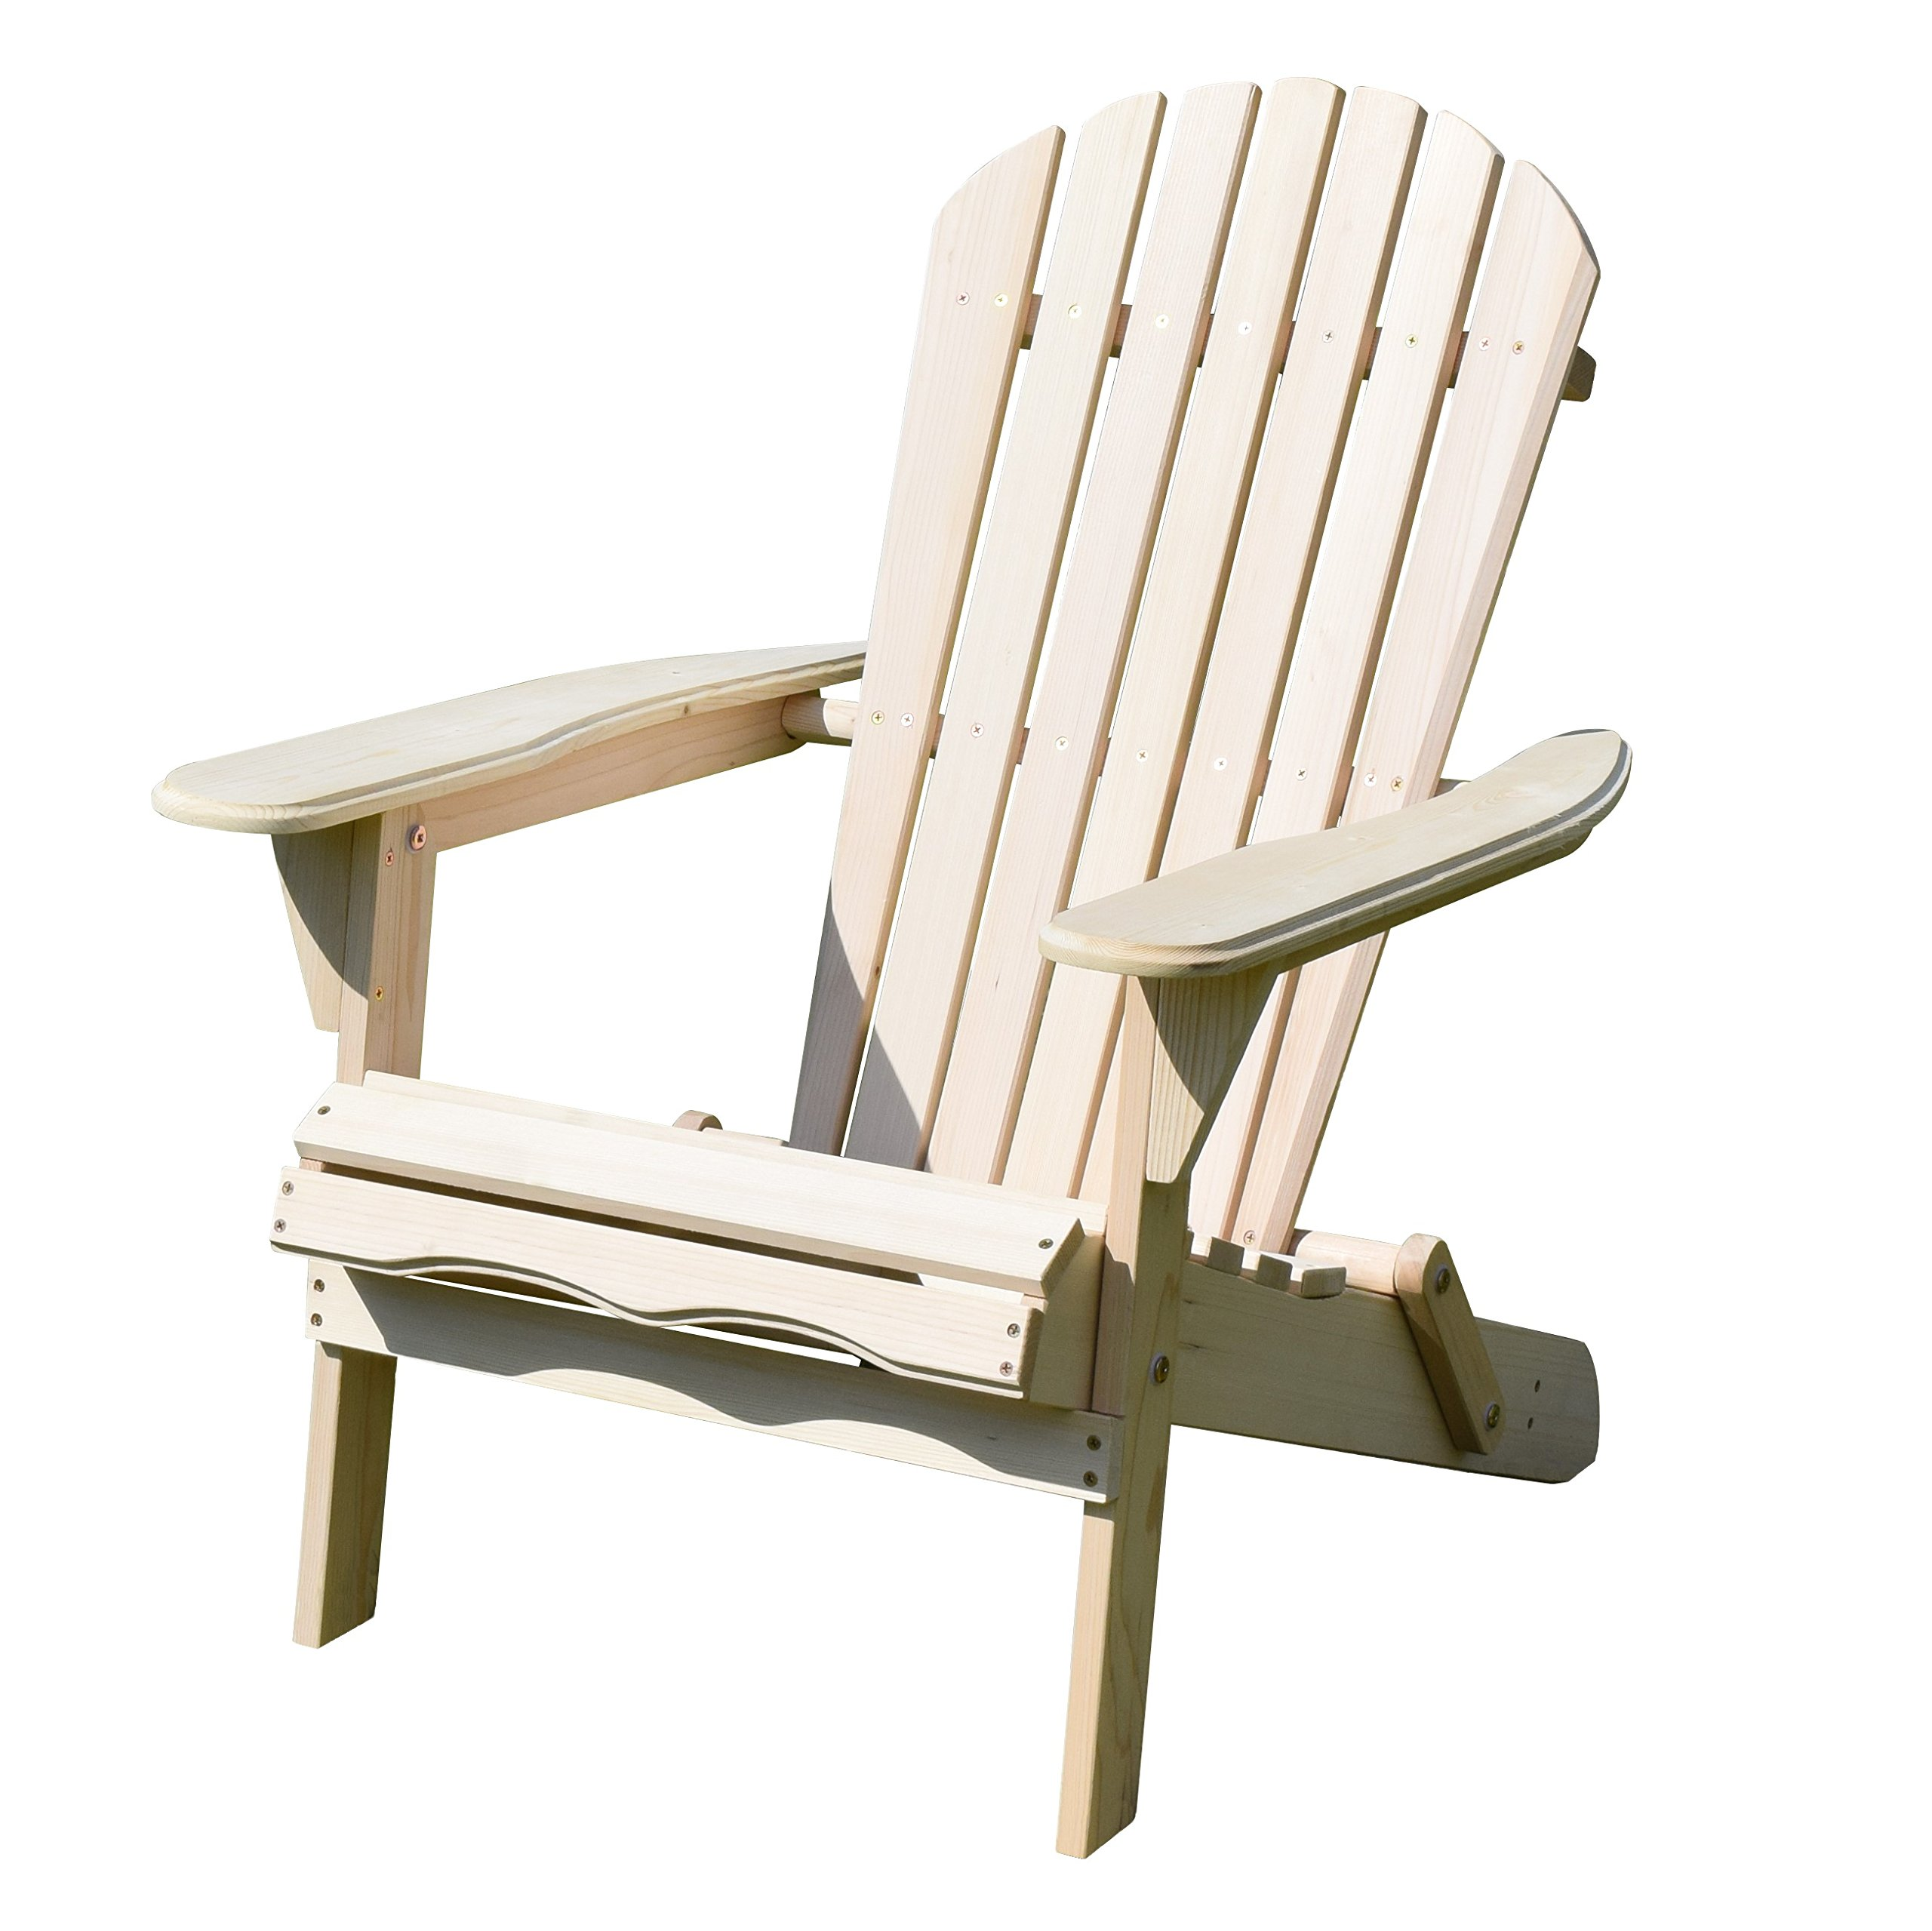 Merry Garden Foldable Wooden Adirondack Chair, Outdoor, Garden, Lawn, Deck Chair, Natural by Merry Garden